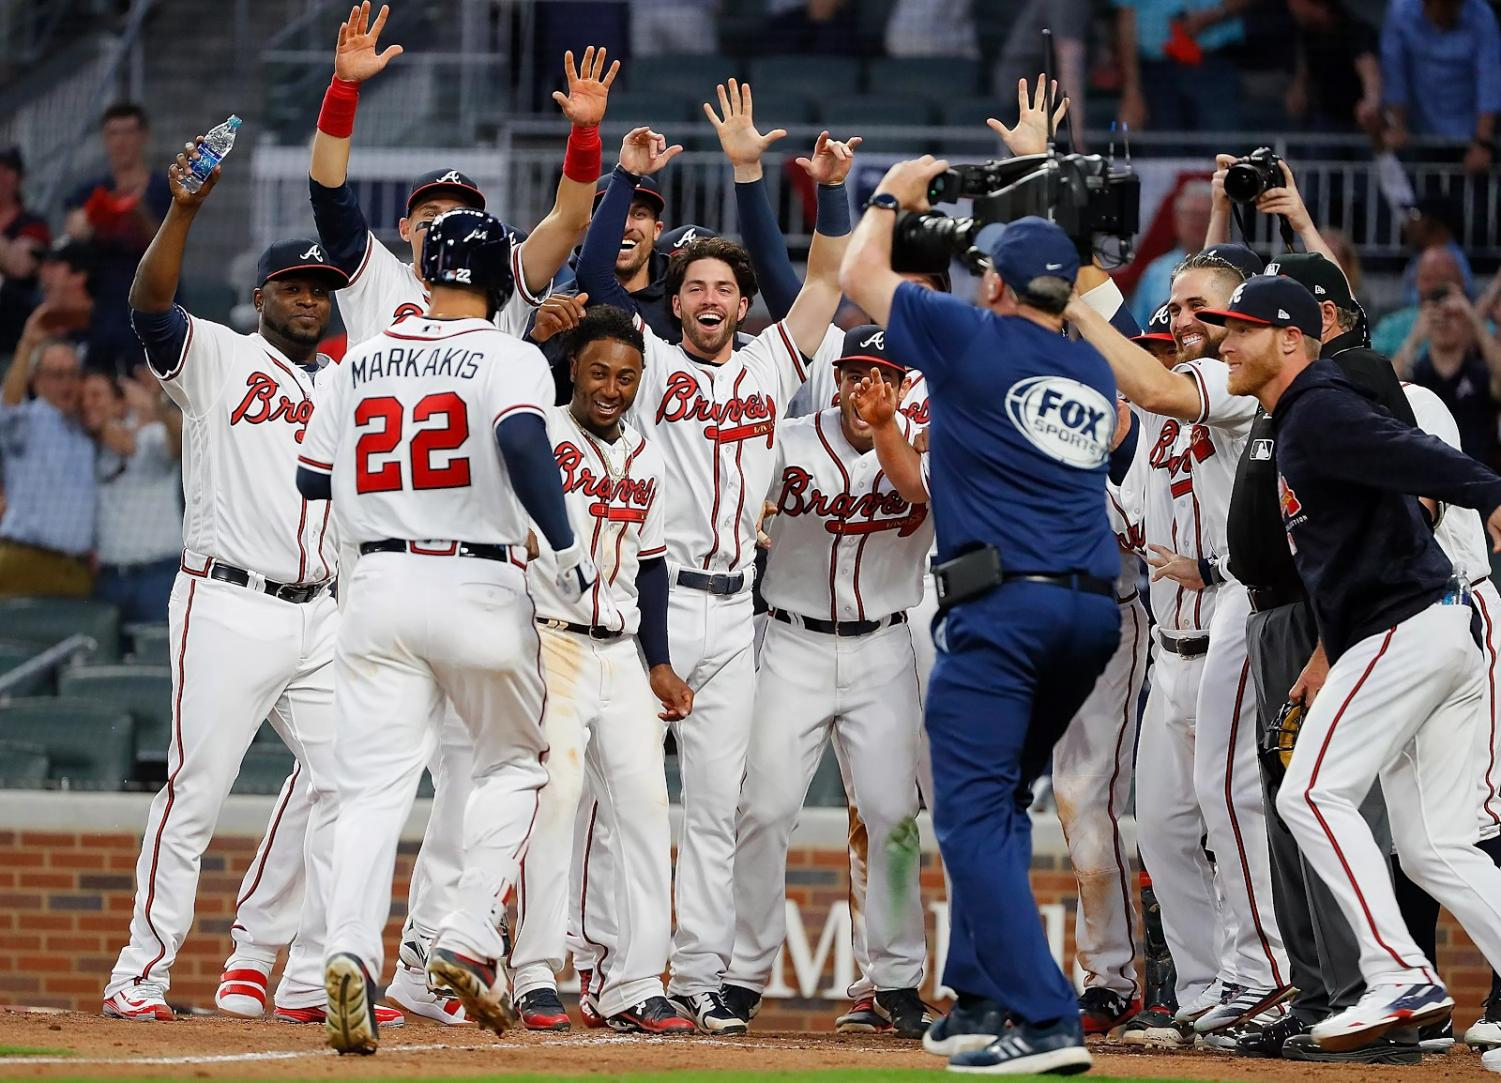 The Braves celebrate a homerun made by Nick Markakis, a common occurrence this season with how well they are doing. Currently, they are leading the National League East. Photo by Jeff Schafer.